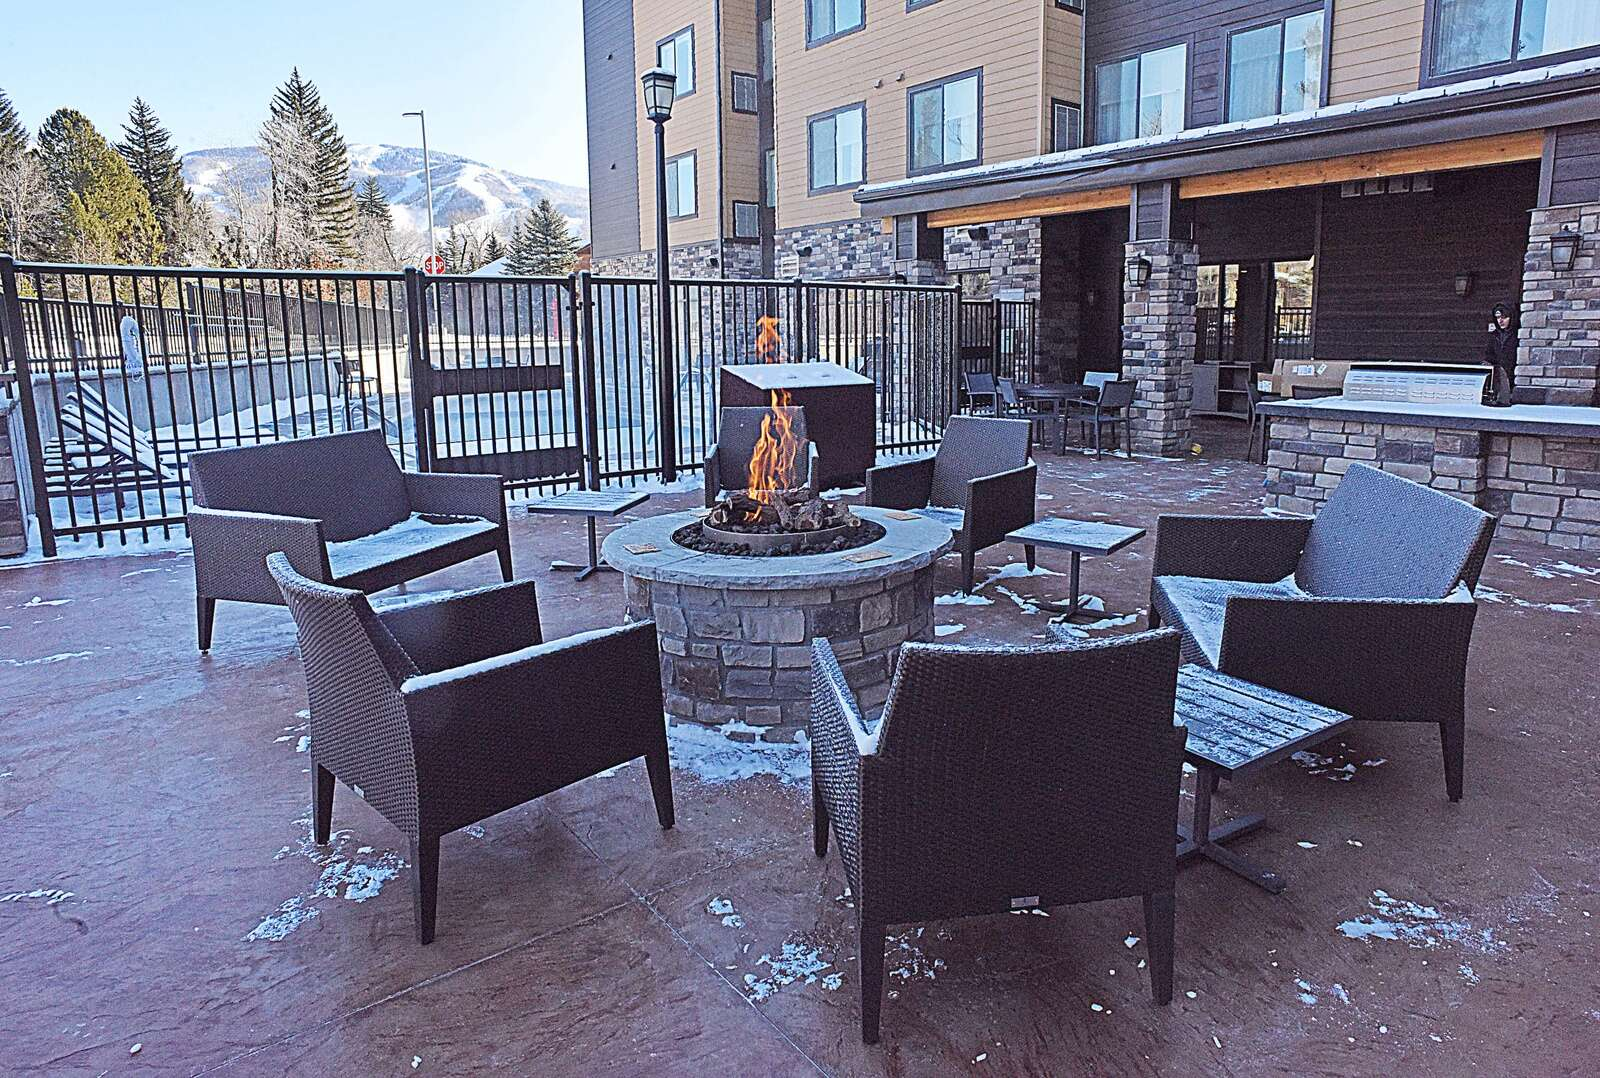 Guests will have access to an outdoor grill and a fire pit that creates a centerpiece for an outdoor seating area at the new Residence Inn by Marriott. (Photo by John F. Russell)